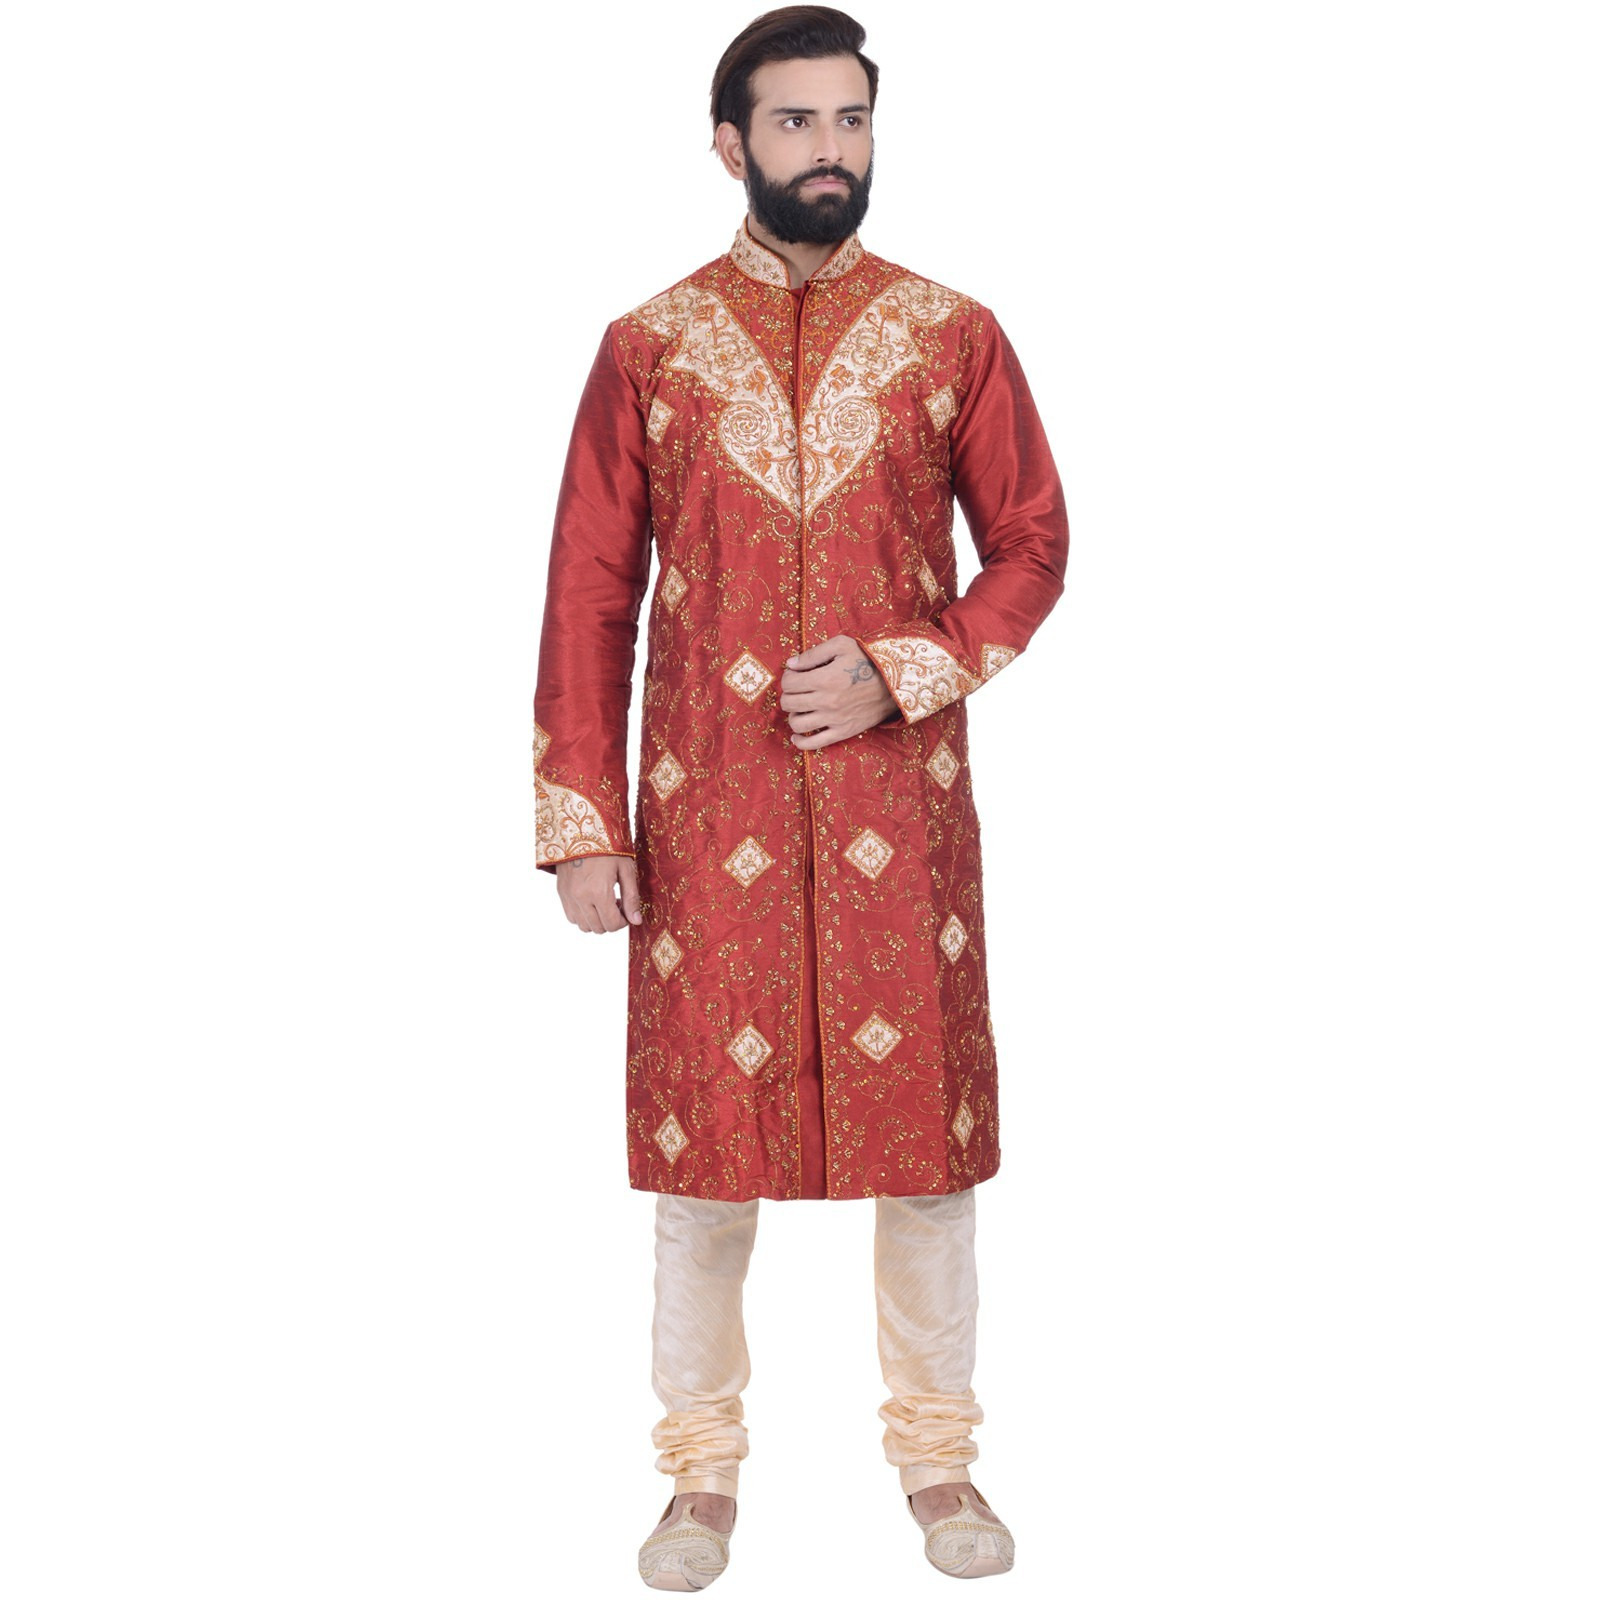 Indian Bollywood Design Red Kurta Sherwani For Men's 2pc Suit